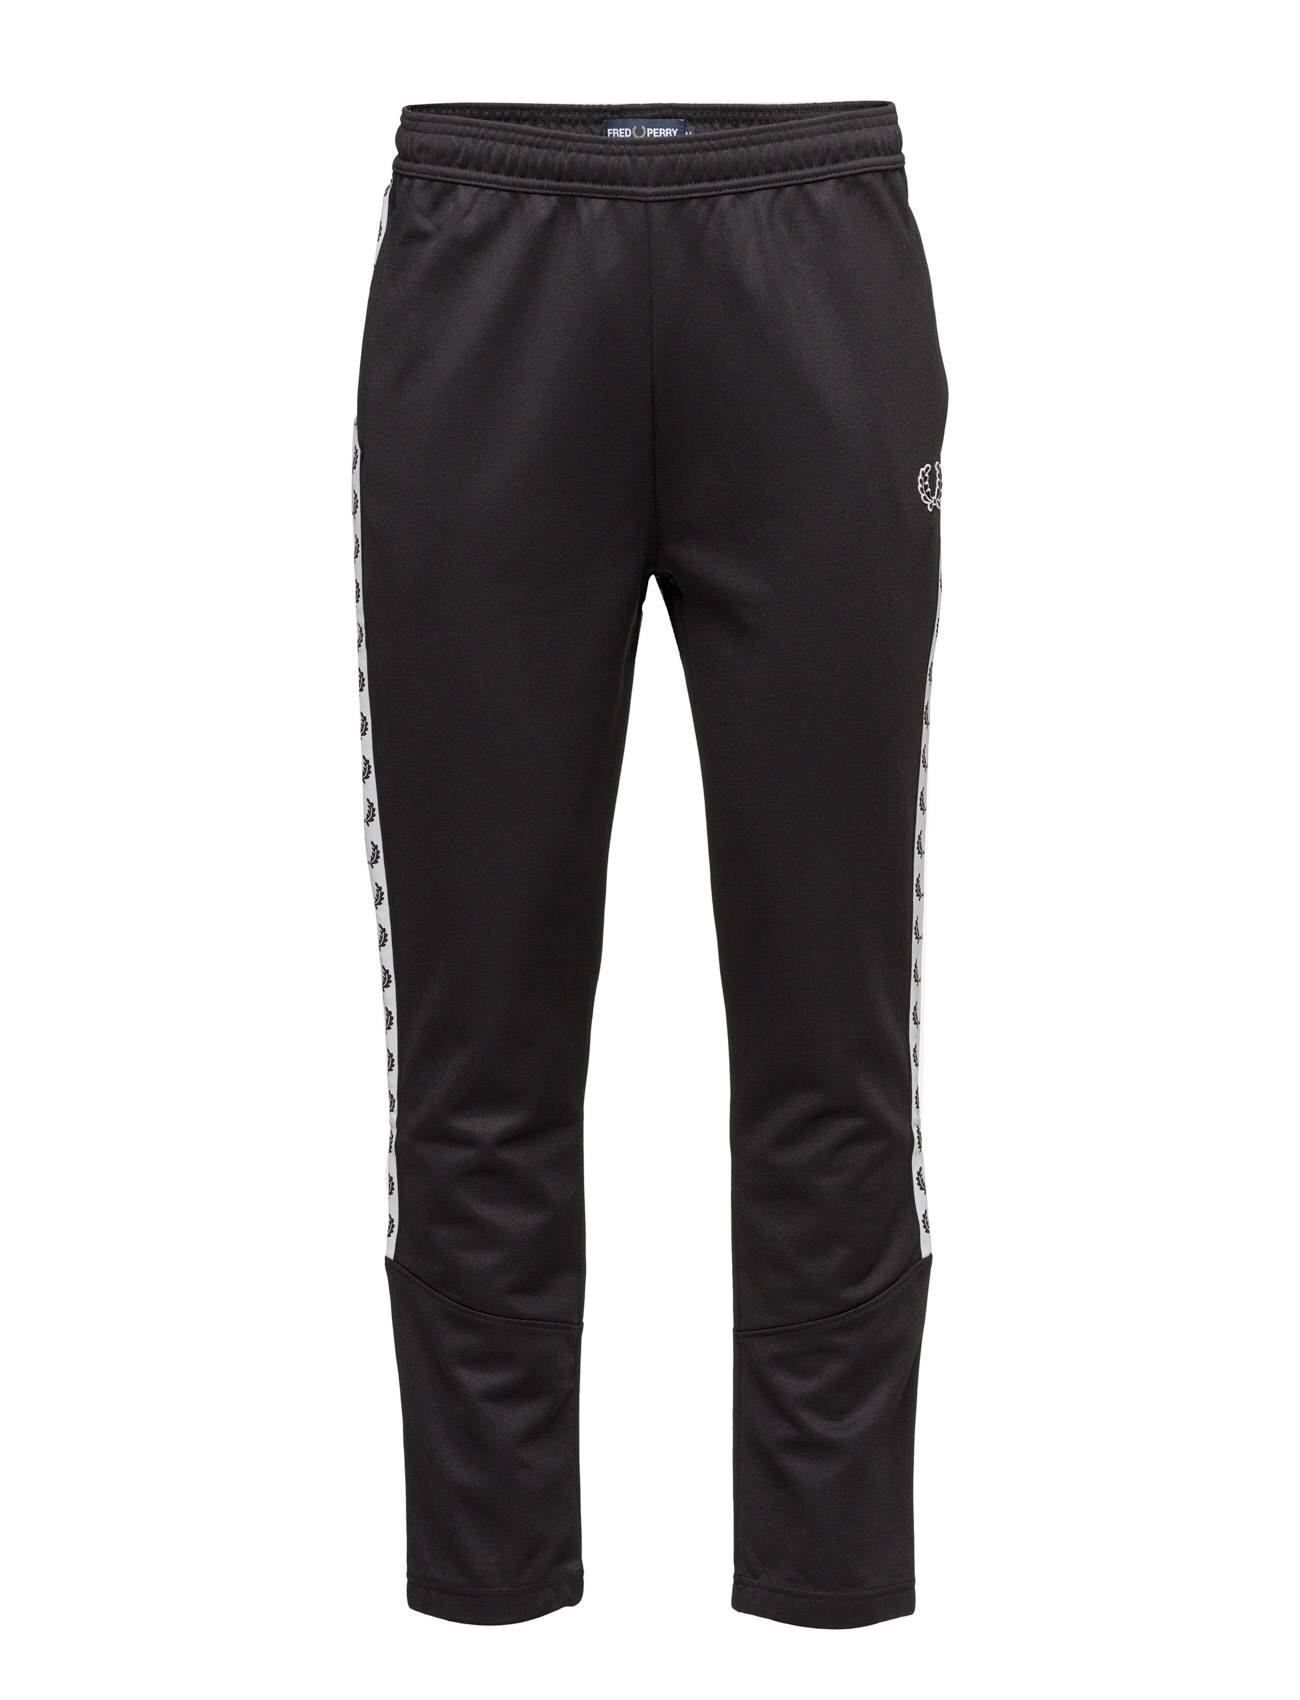 Fred Perry Taped Track Pant